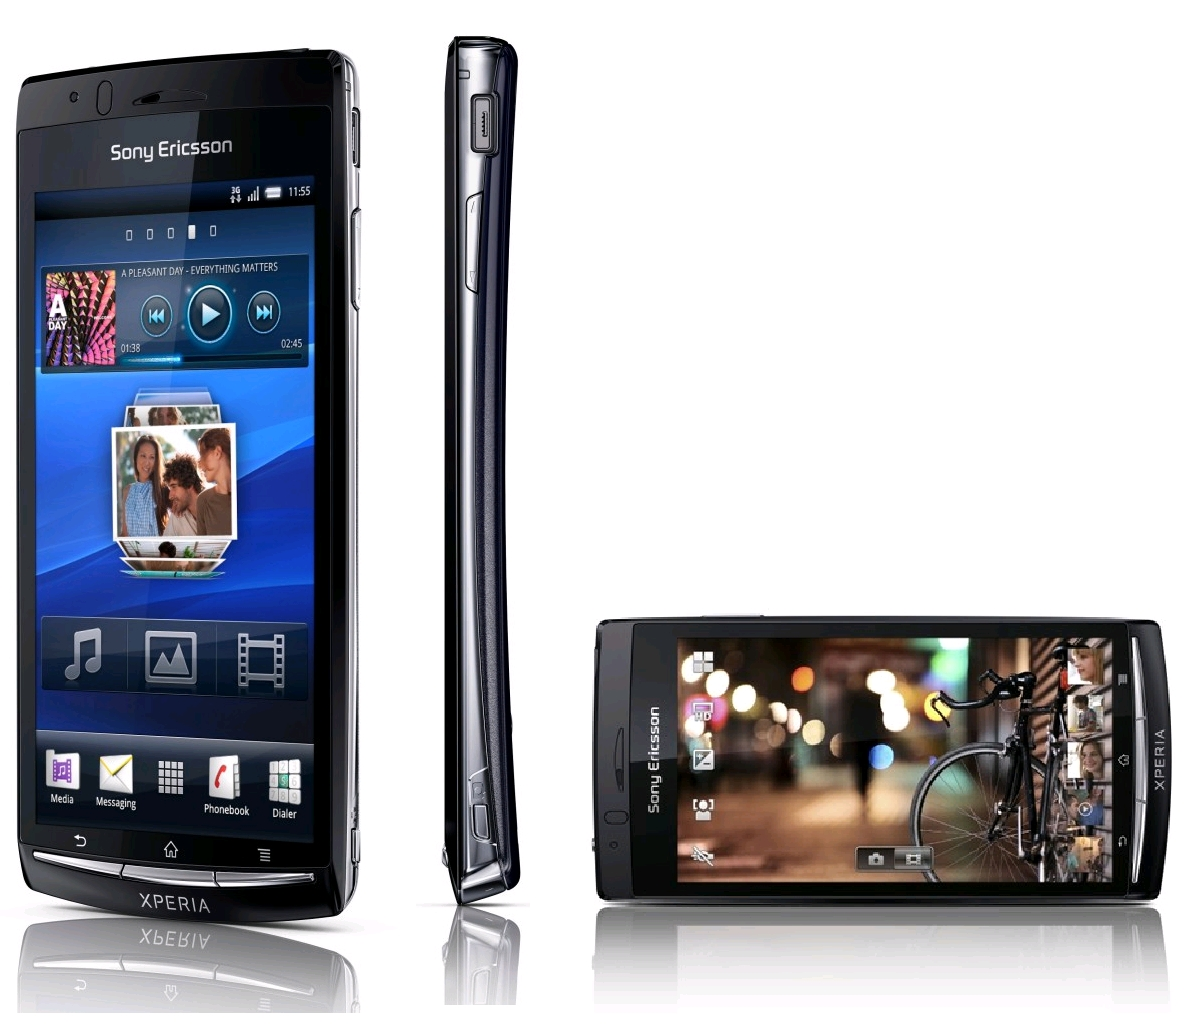 Sony ericsson xperia x10 update 301 download